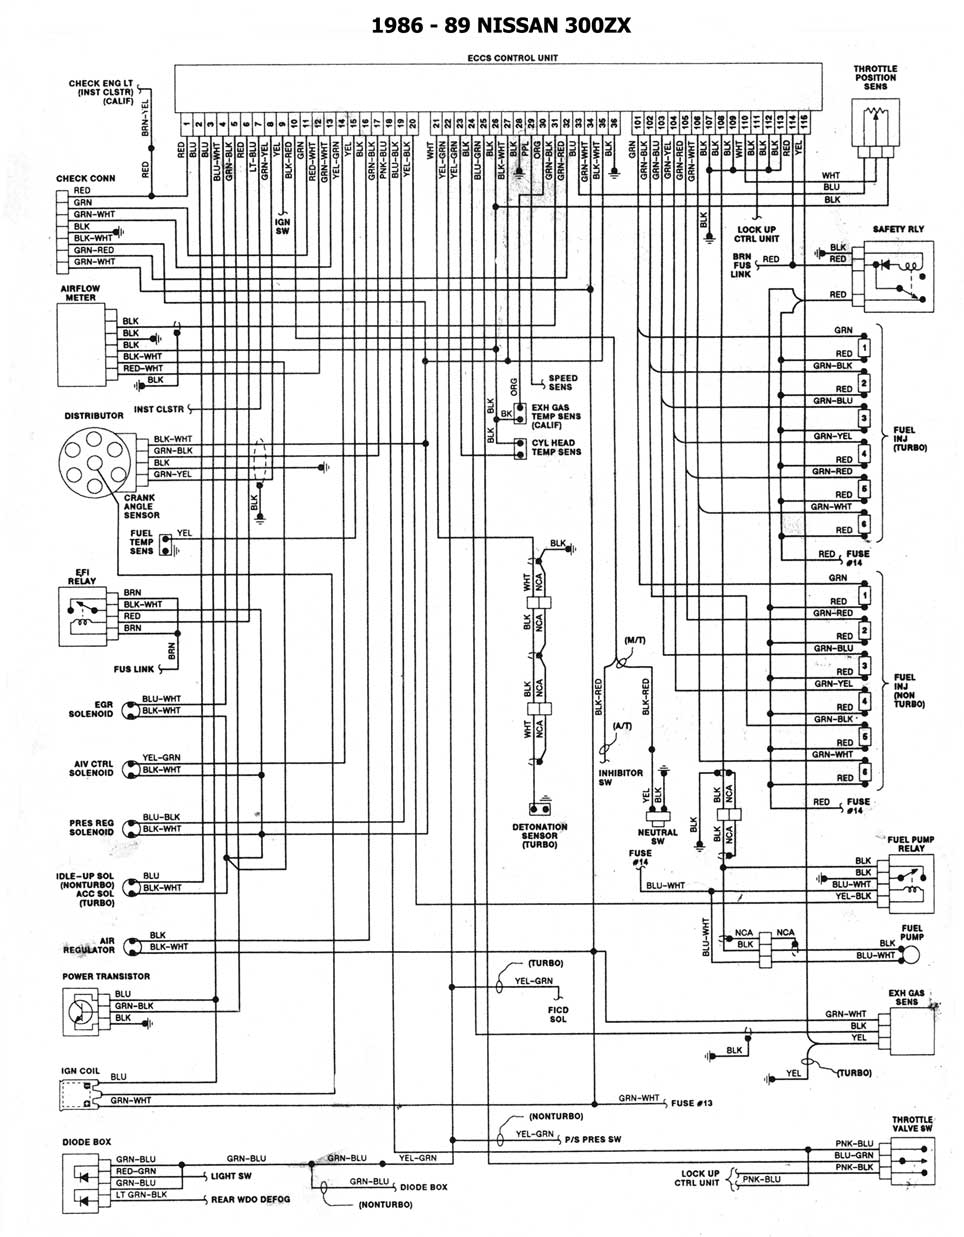 hight resolution of 89 nissan 300zx wiring diagram wiring diagram89 nissan 300zx diagram 0 awwajwii newtrading info